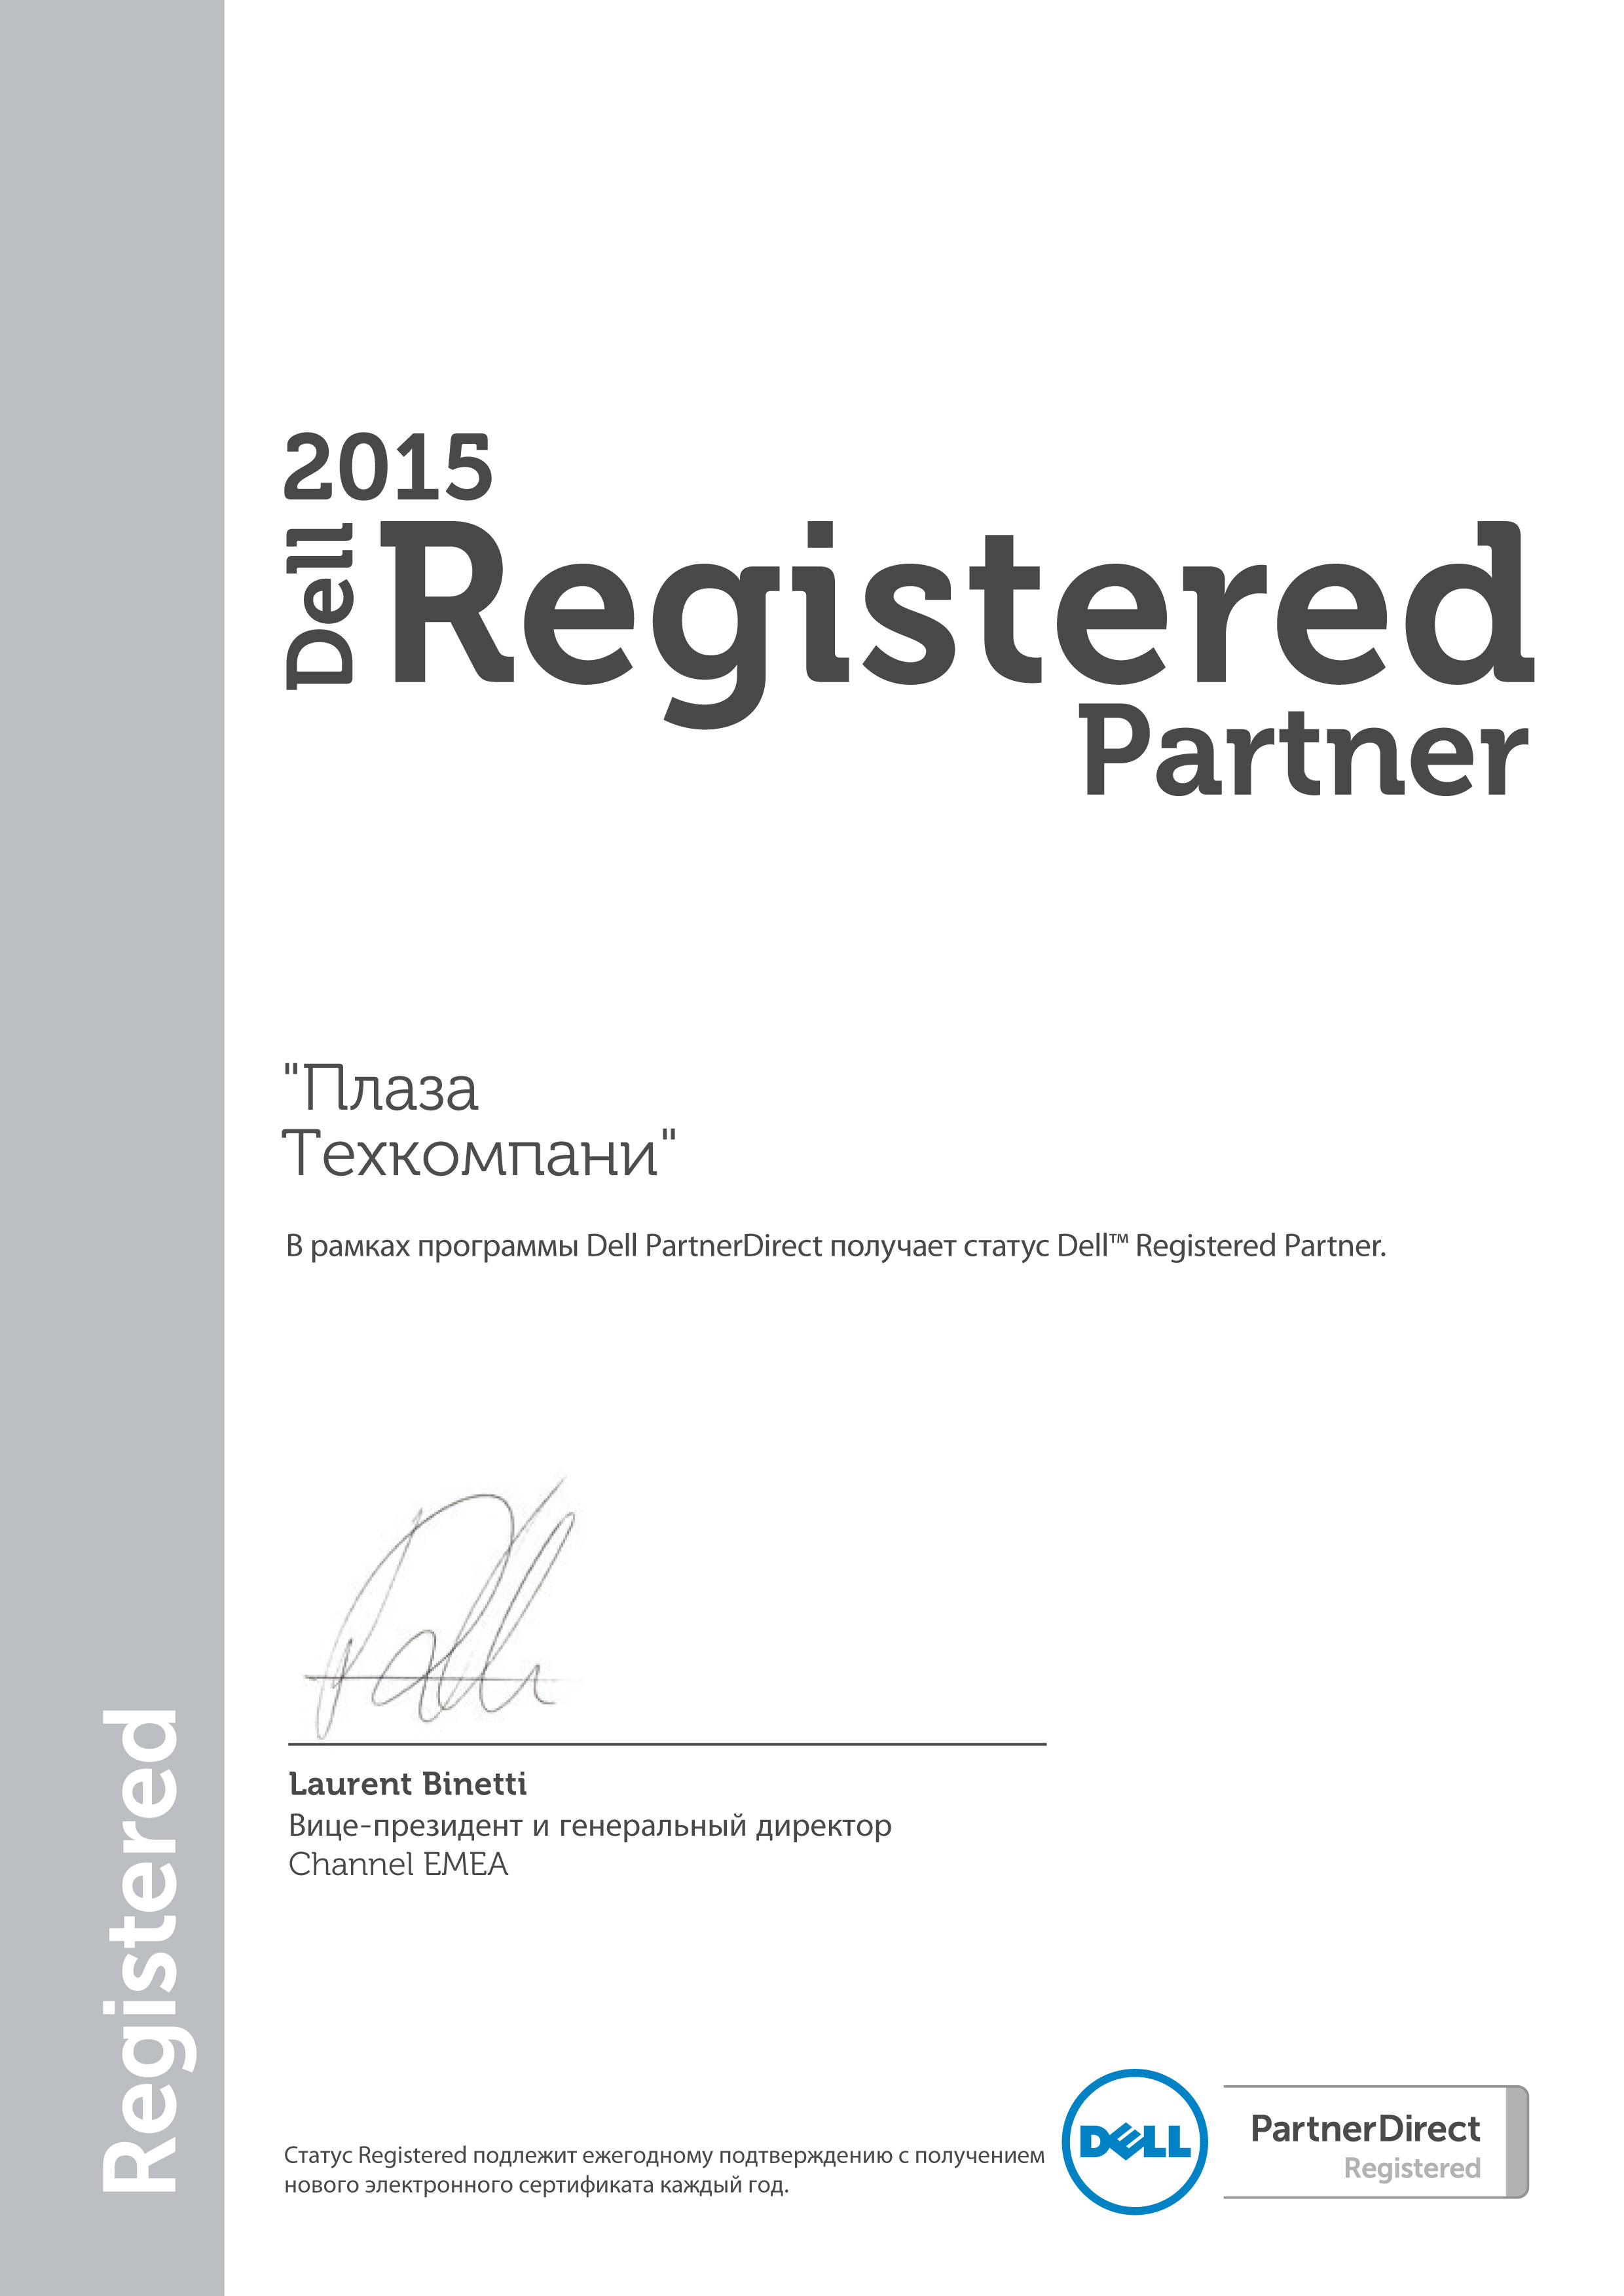 Dell Registered Partner Сервер Dell PowerEdge R230 R330 R430 R530 R530xd R630 R730 R730xd R830 R930 T130 T30 T330 T430 T630 сертификат партнера  делл